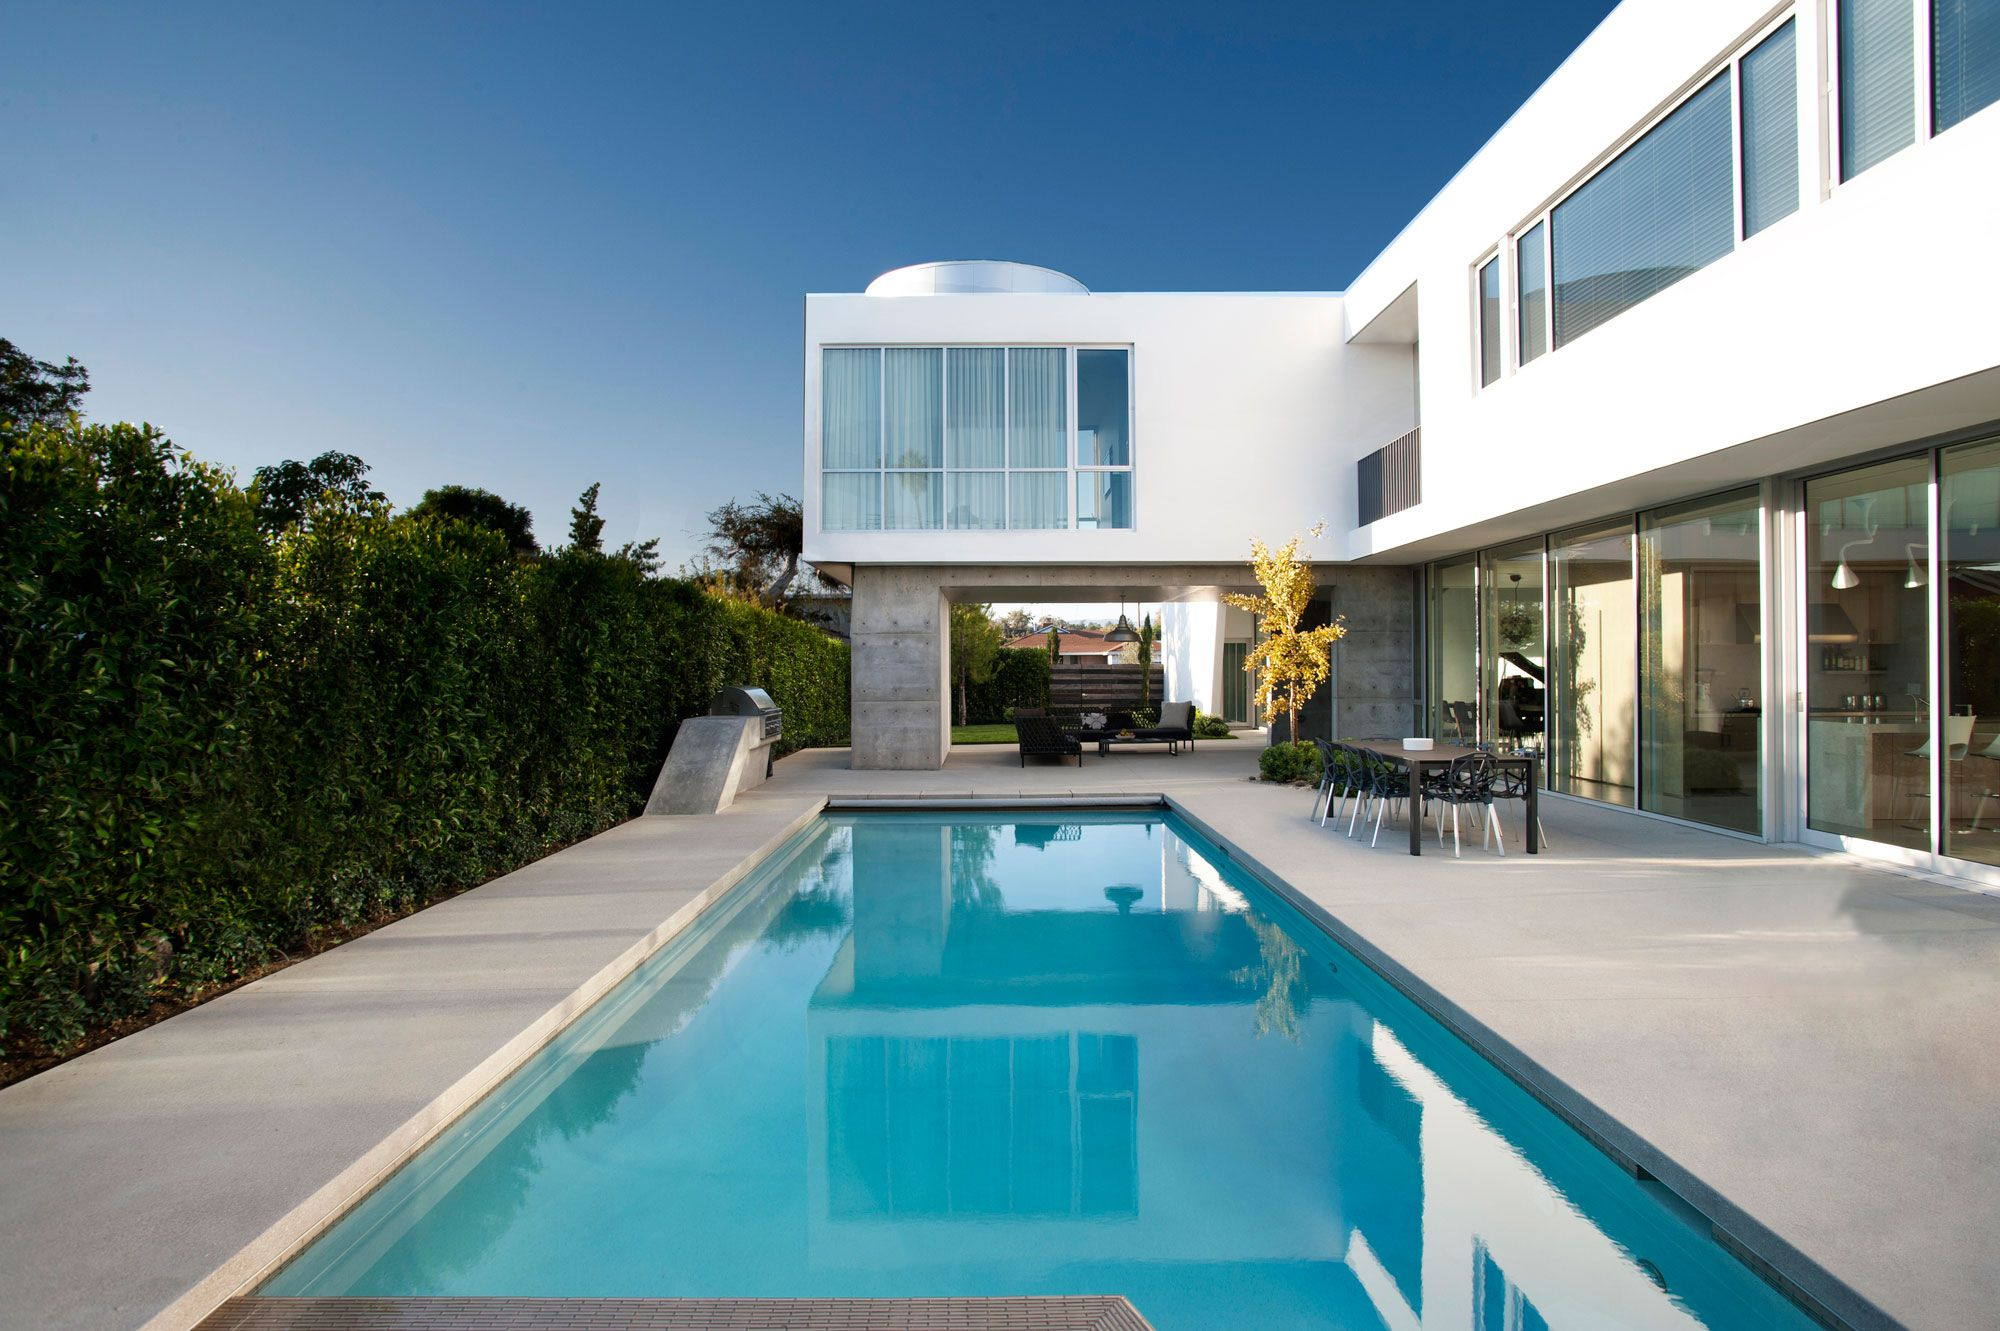 modern family home by dennis gibbens architects caandesign